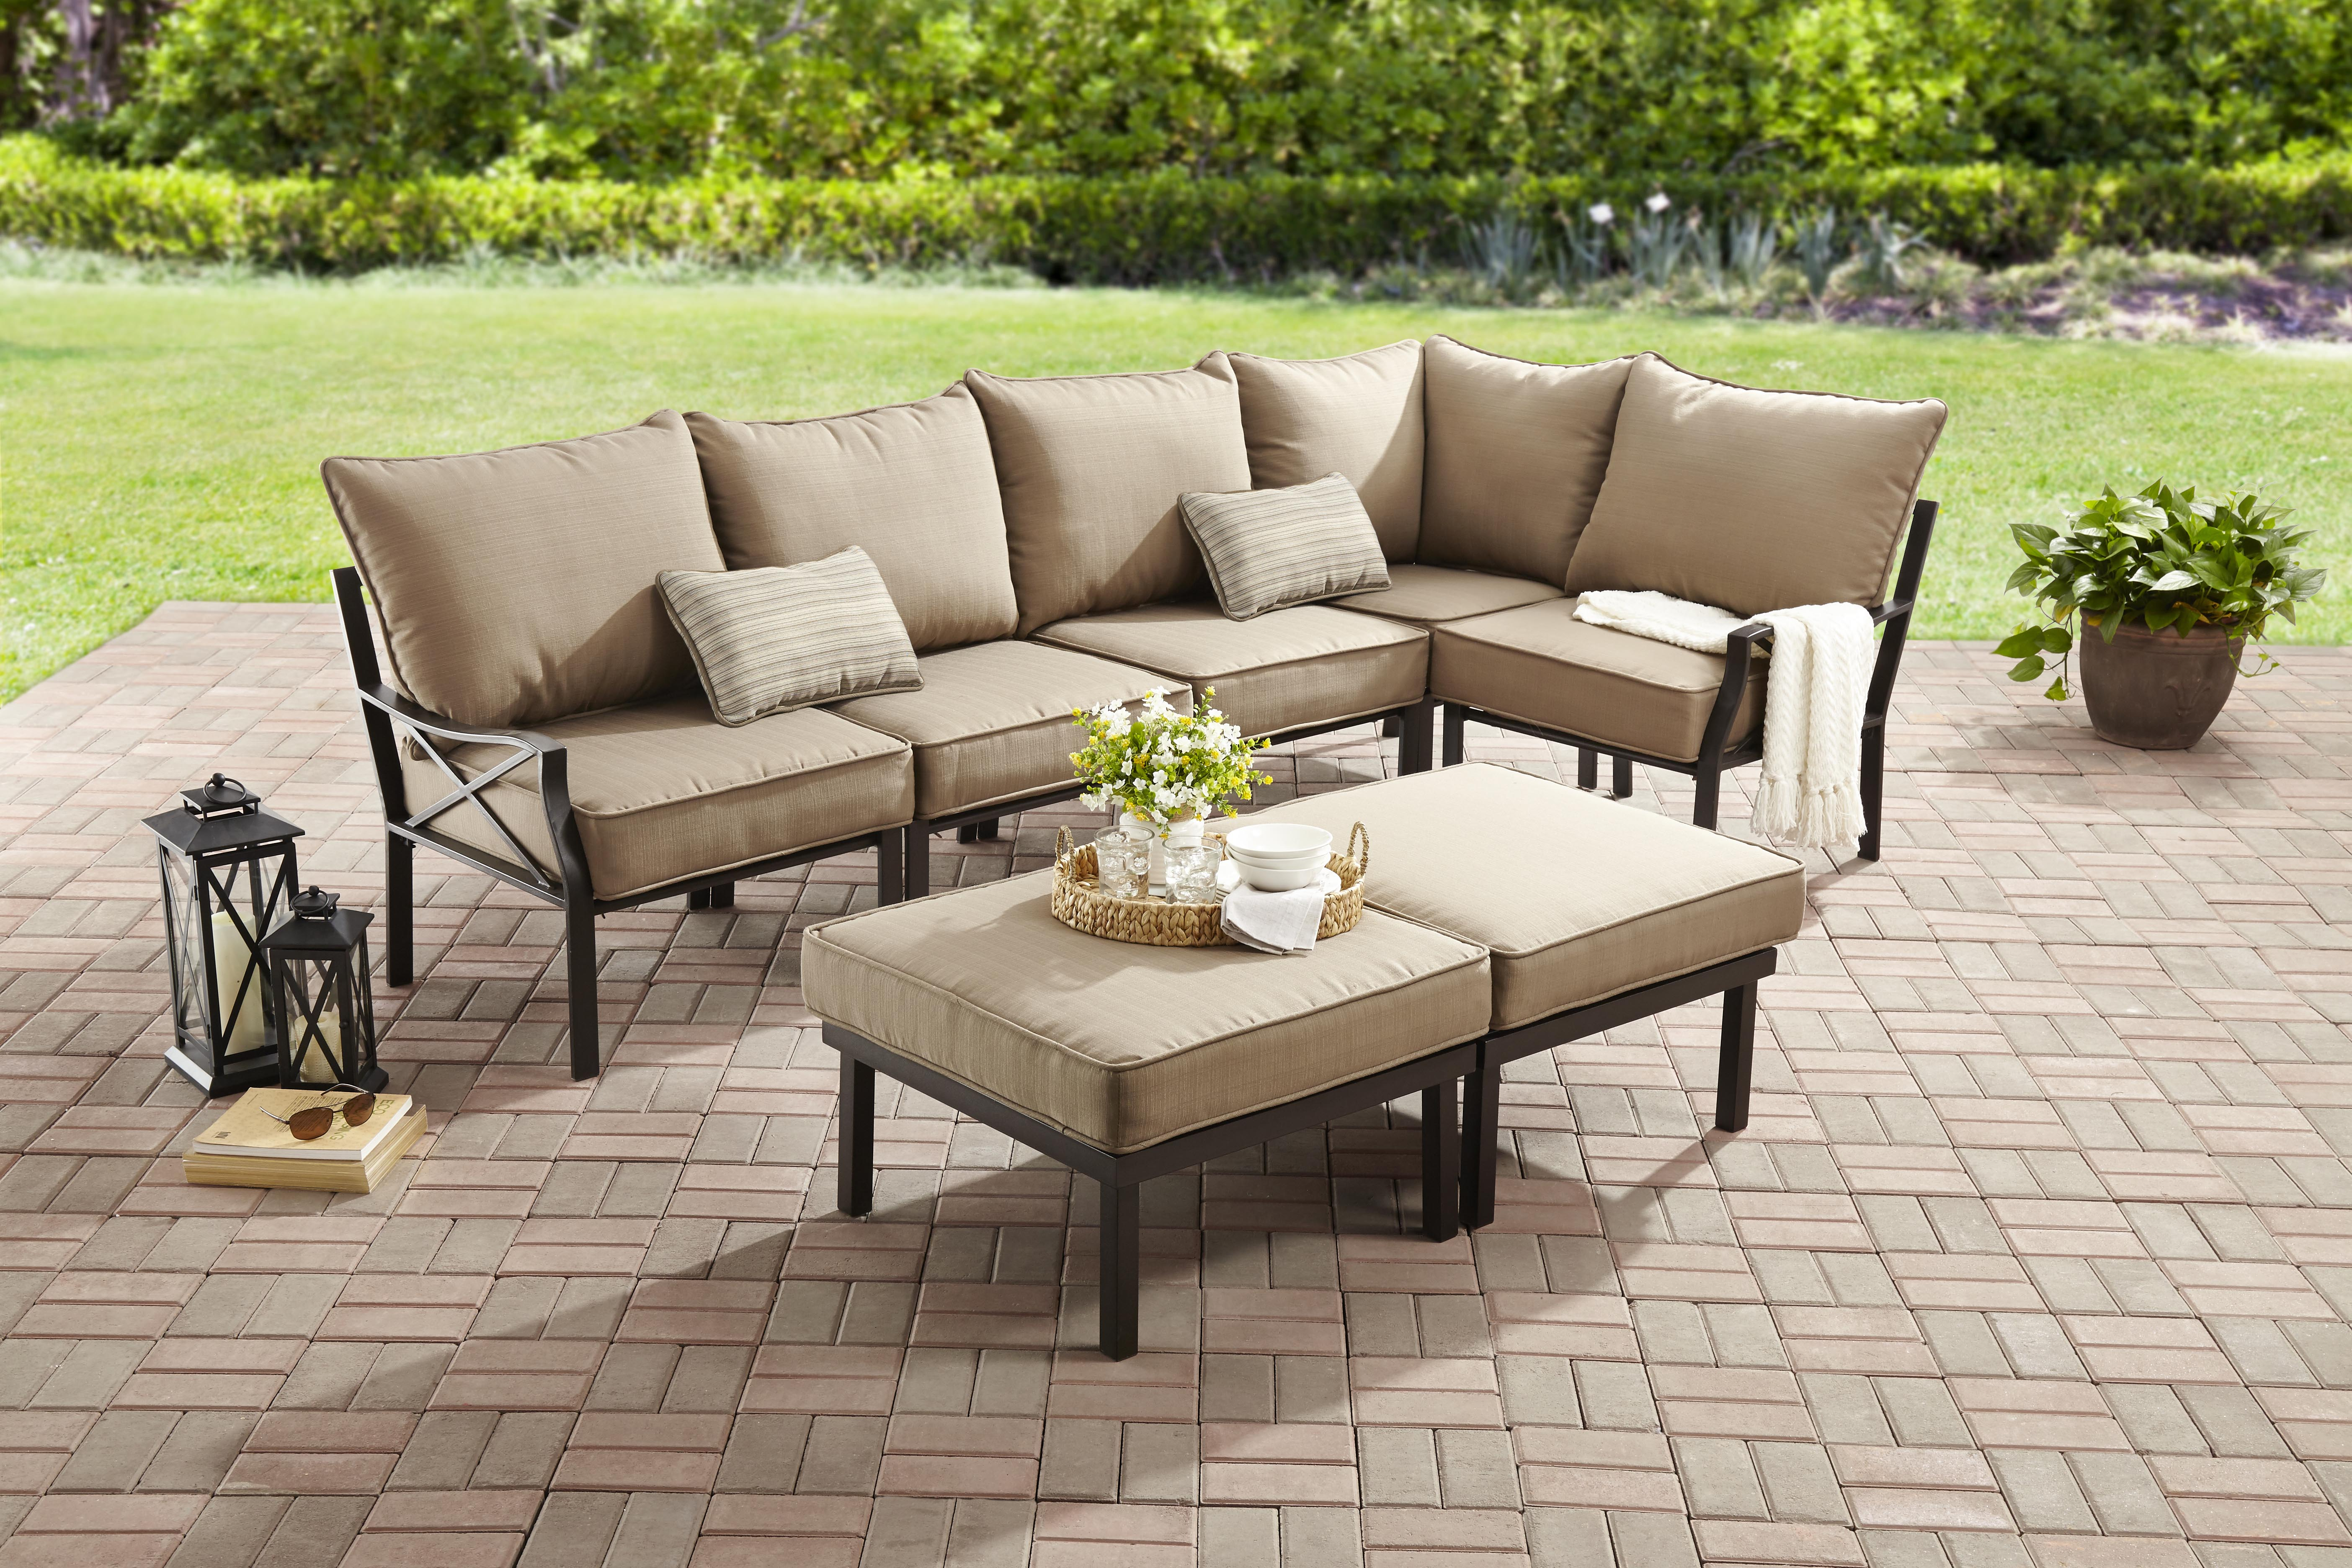 Mainstays Sandhill 7-Piece Outdoor Sofa Sectional Set ... on 5 Piece Sectional Patio Set id=15210